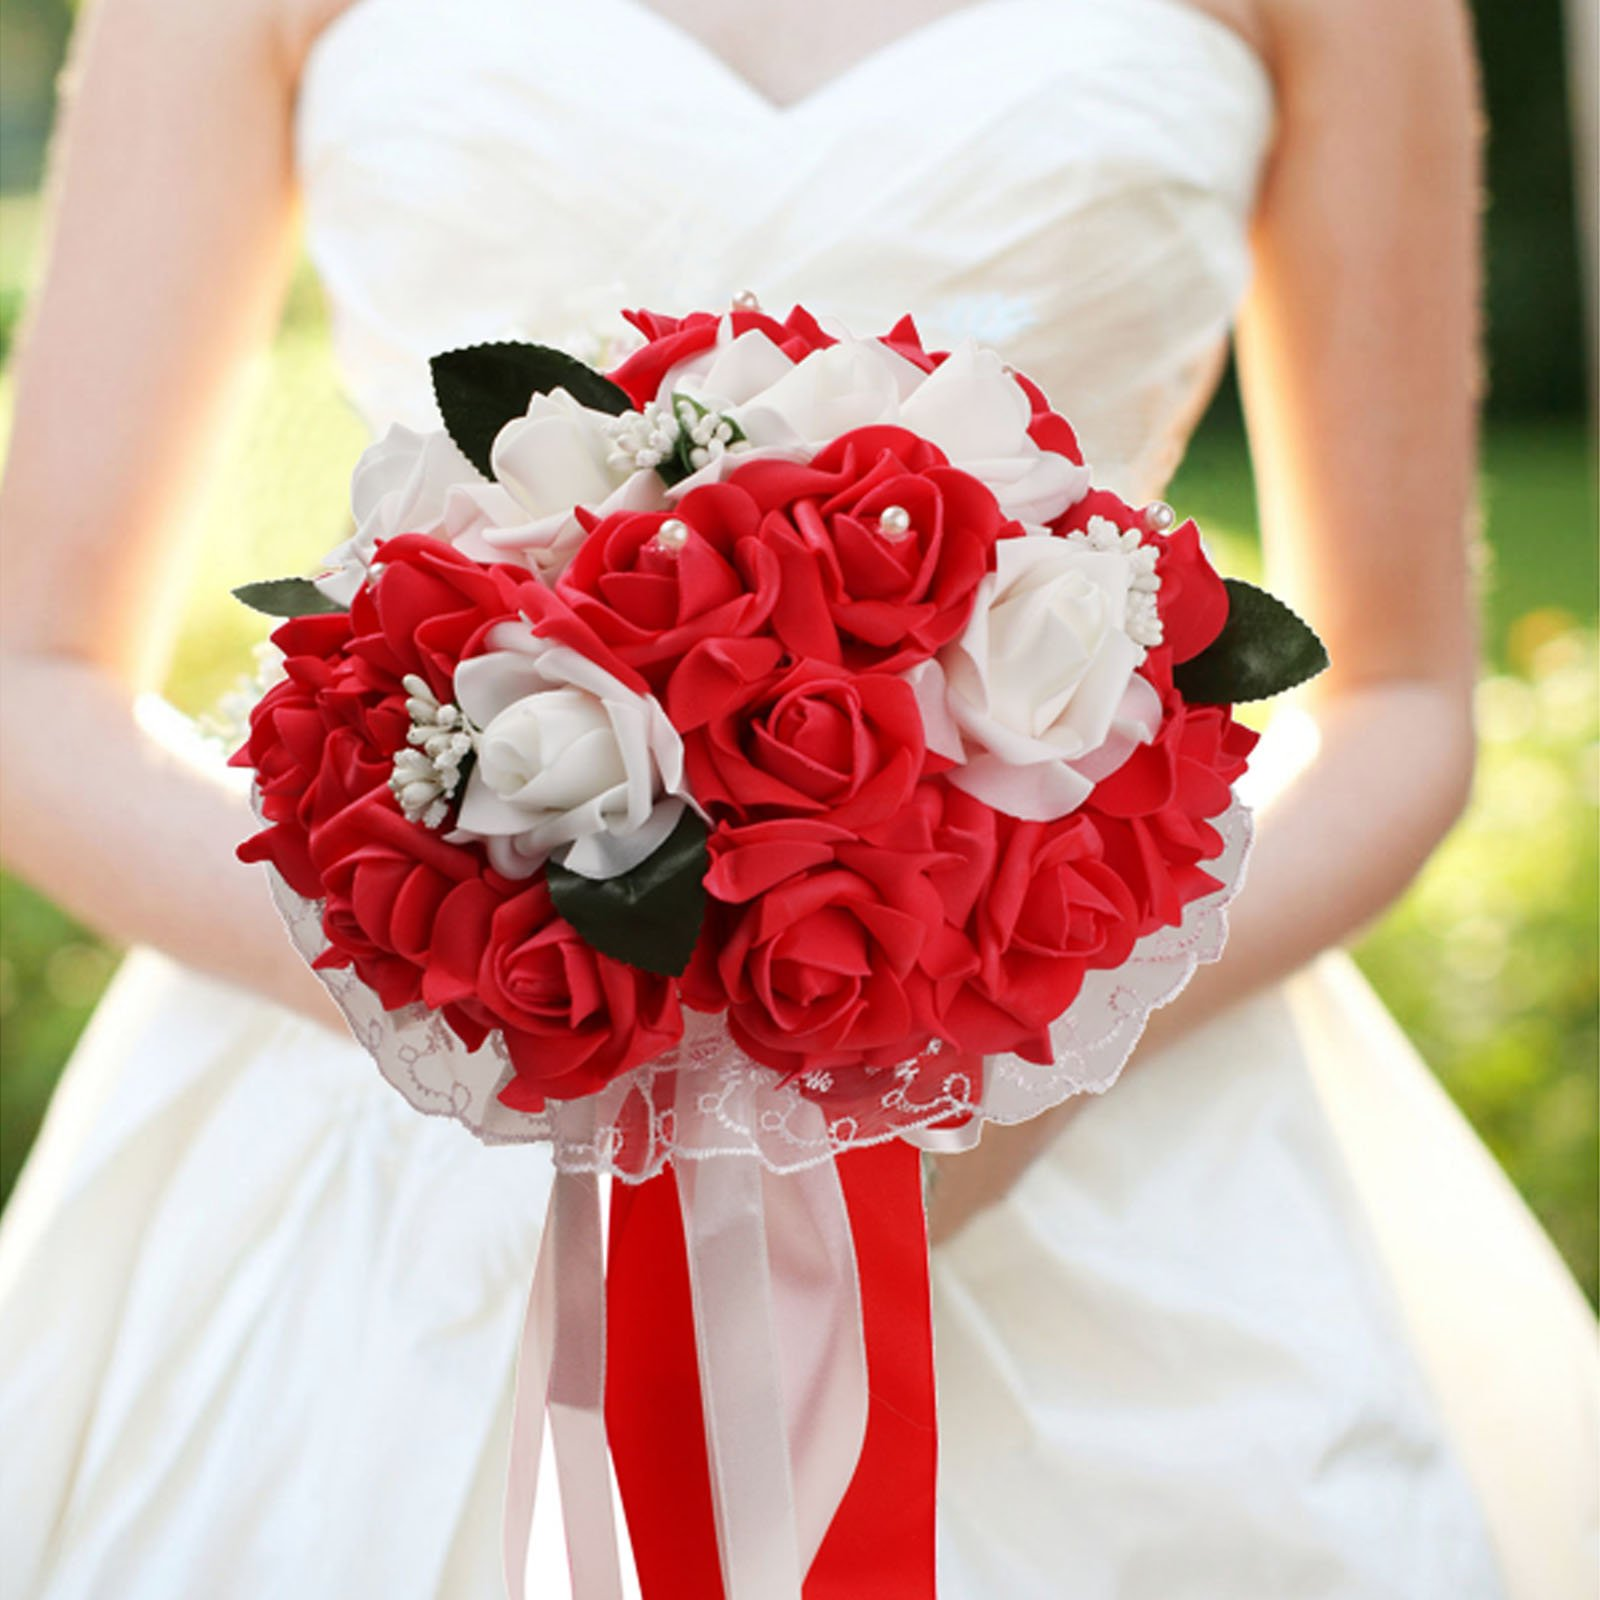 Artificial Red Bridesmaid Bouquets For Wedding Amazon